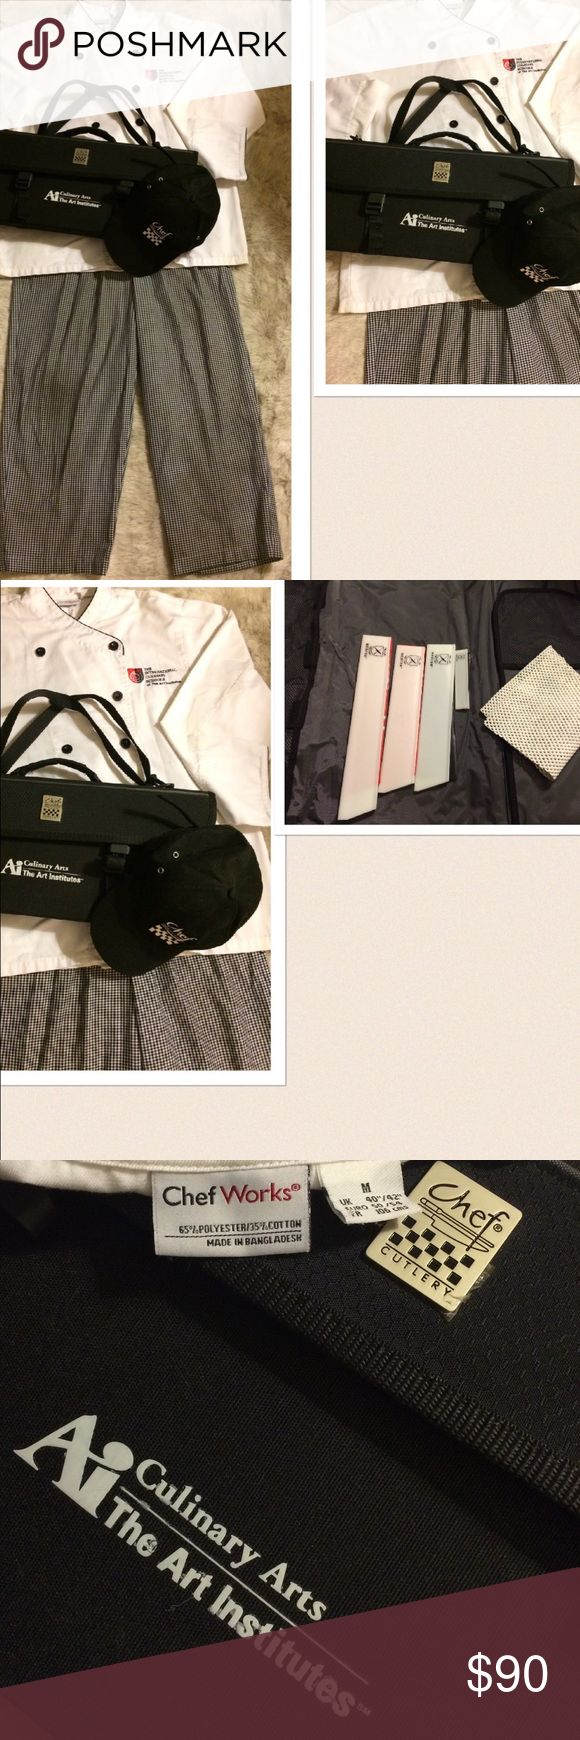 The Art Institute Chef Coat Pants Mercer Knife You will receive: 1 The Art Institute Chef Coat: Medium. 1 Chef Works Pants: Medium. 1 Chef Hat. 1 Chef Cutlery Knife Kit (empty with only the sleeves and has 1 broken clip) The coat and pants are used with some stain marks on the cuff of the coat. Knife kit and hat are new. Chef Works Jackets & Coats